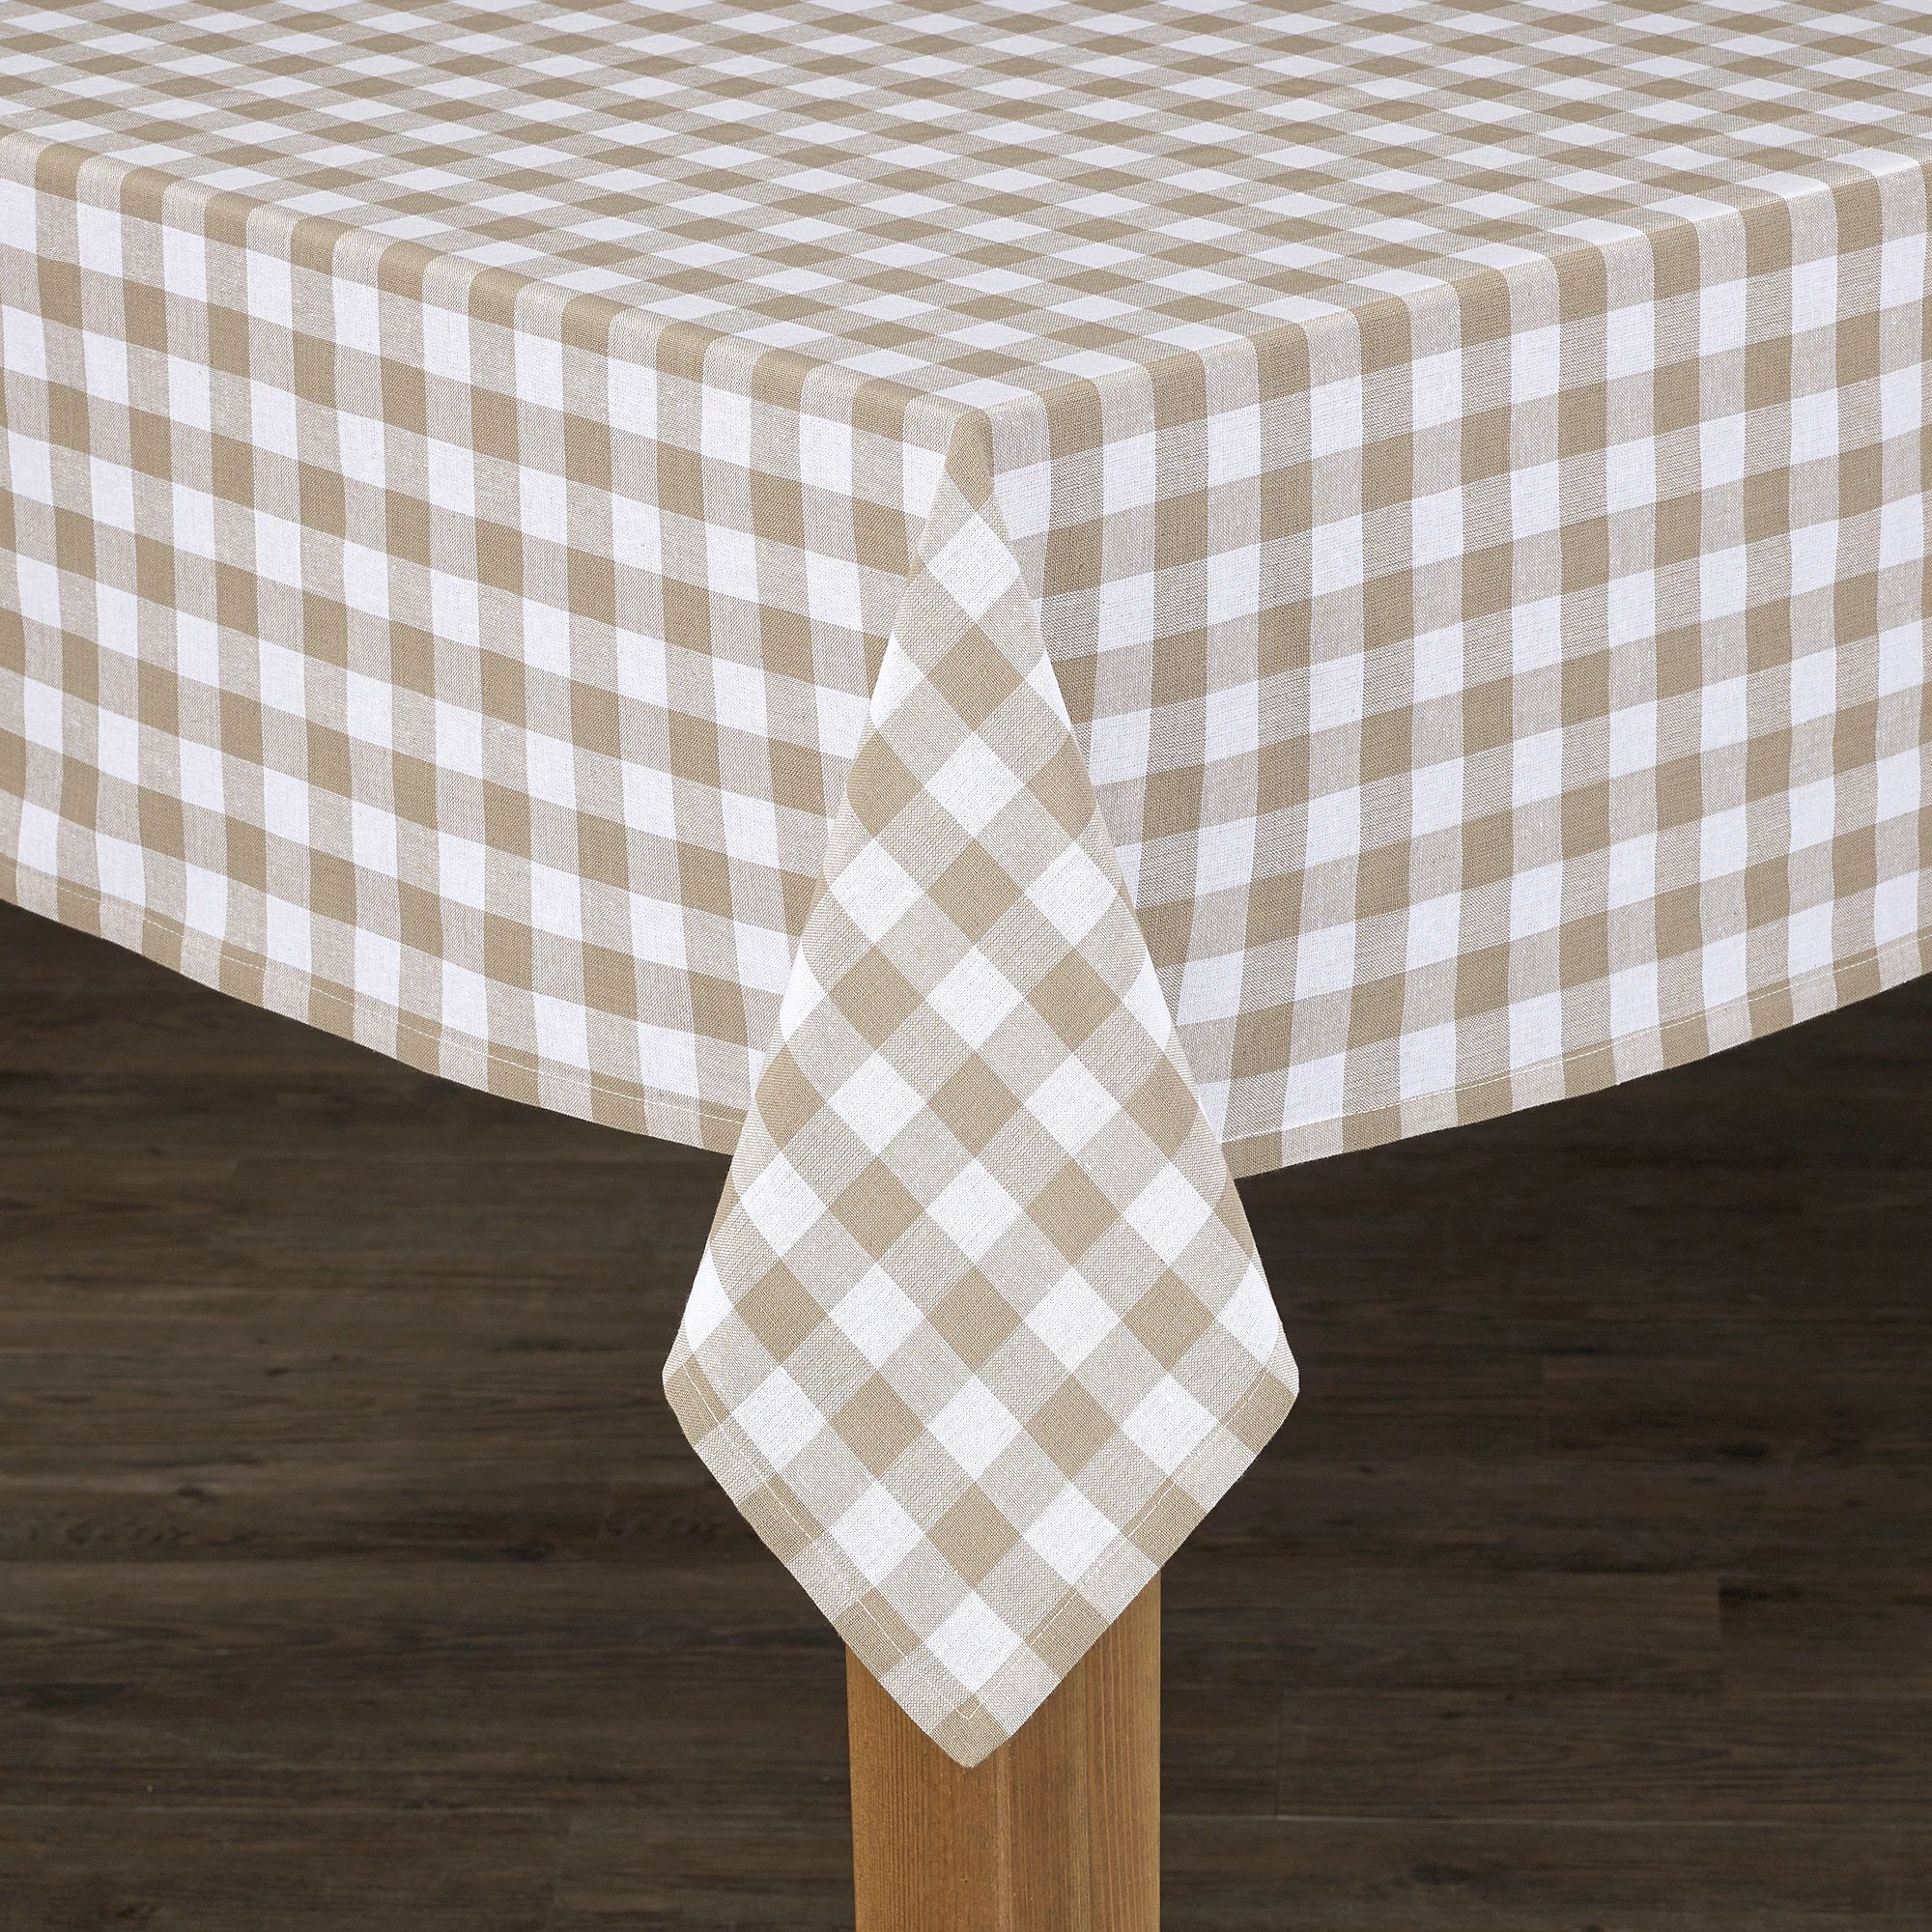 Conventry Sand Buffalo Check 100 Cotton Tablecloth 70 Round Walmart Com Table Cloth Tablecloth Sizes Cotton Tablecloths